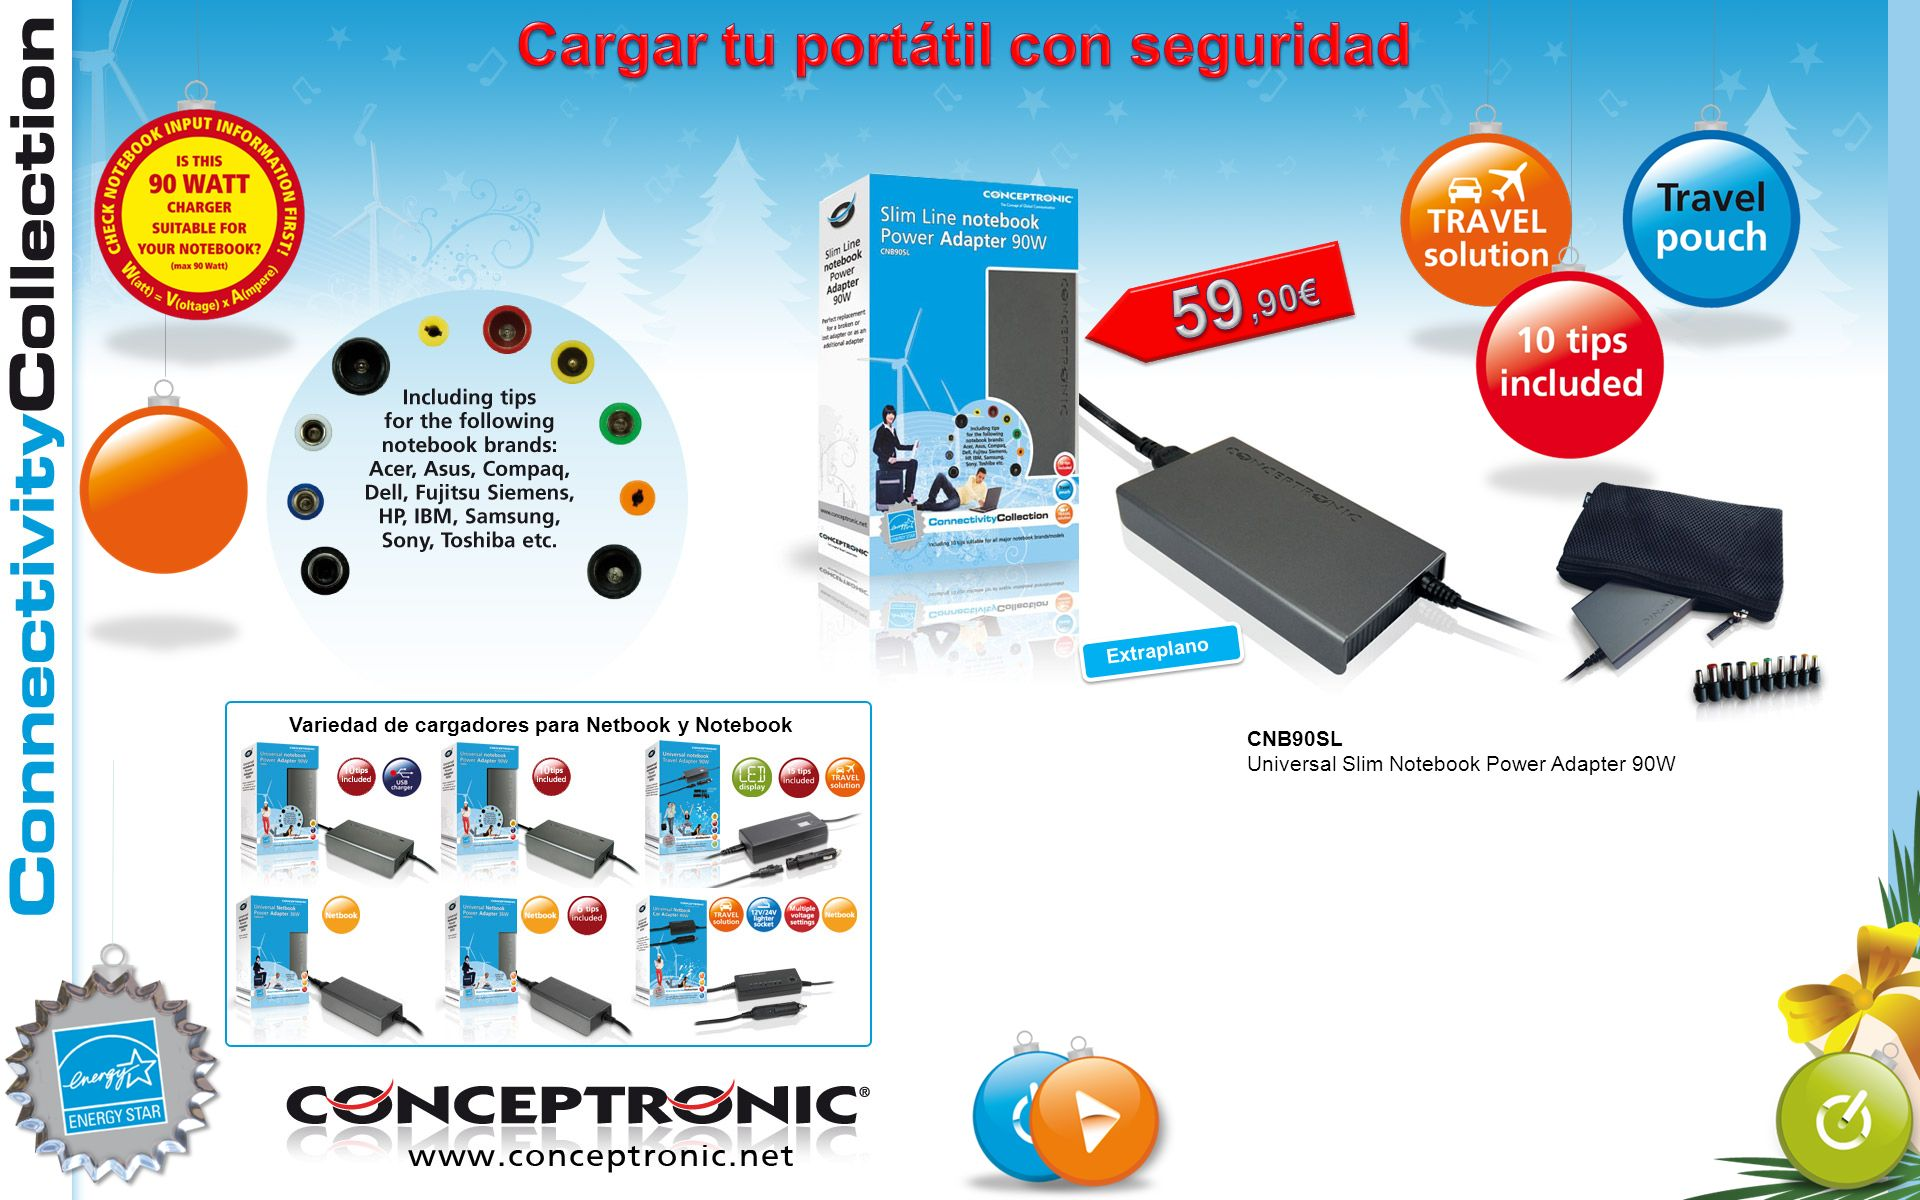 CNB90SL Universal Slim Notebook Power Adapter 90W Extraplano Variedad de cargadores para Netbook y Notebook